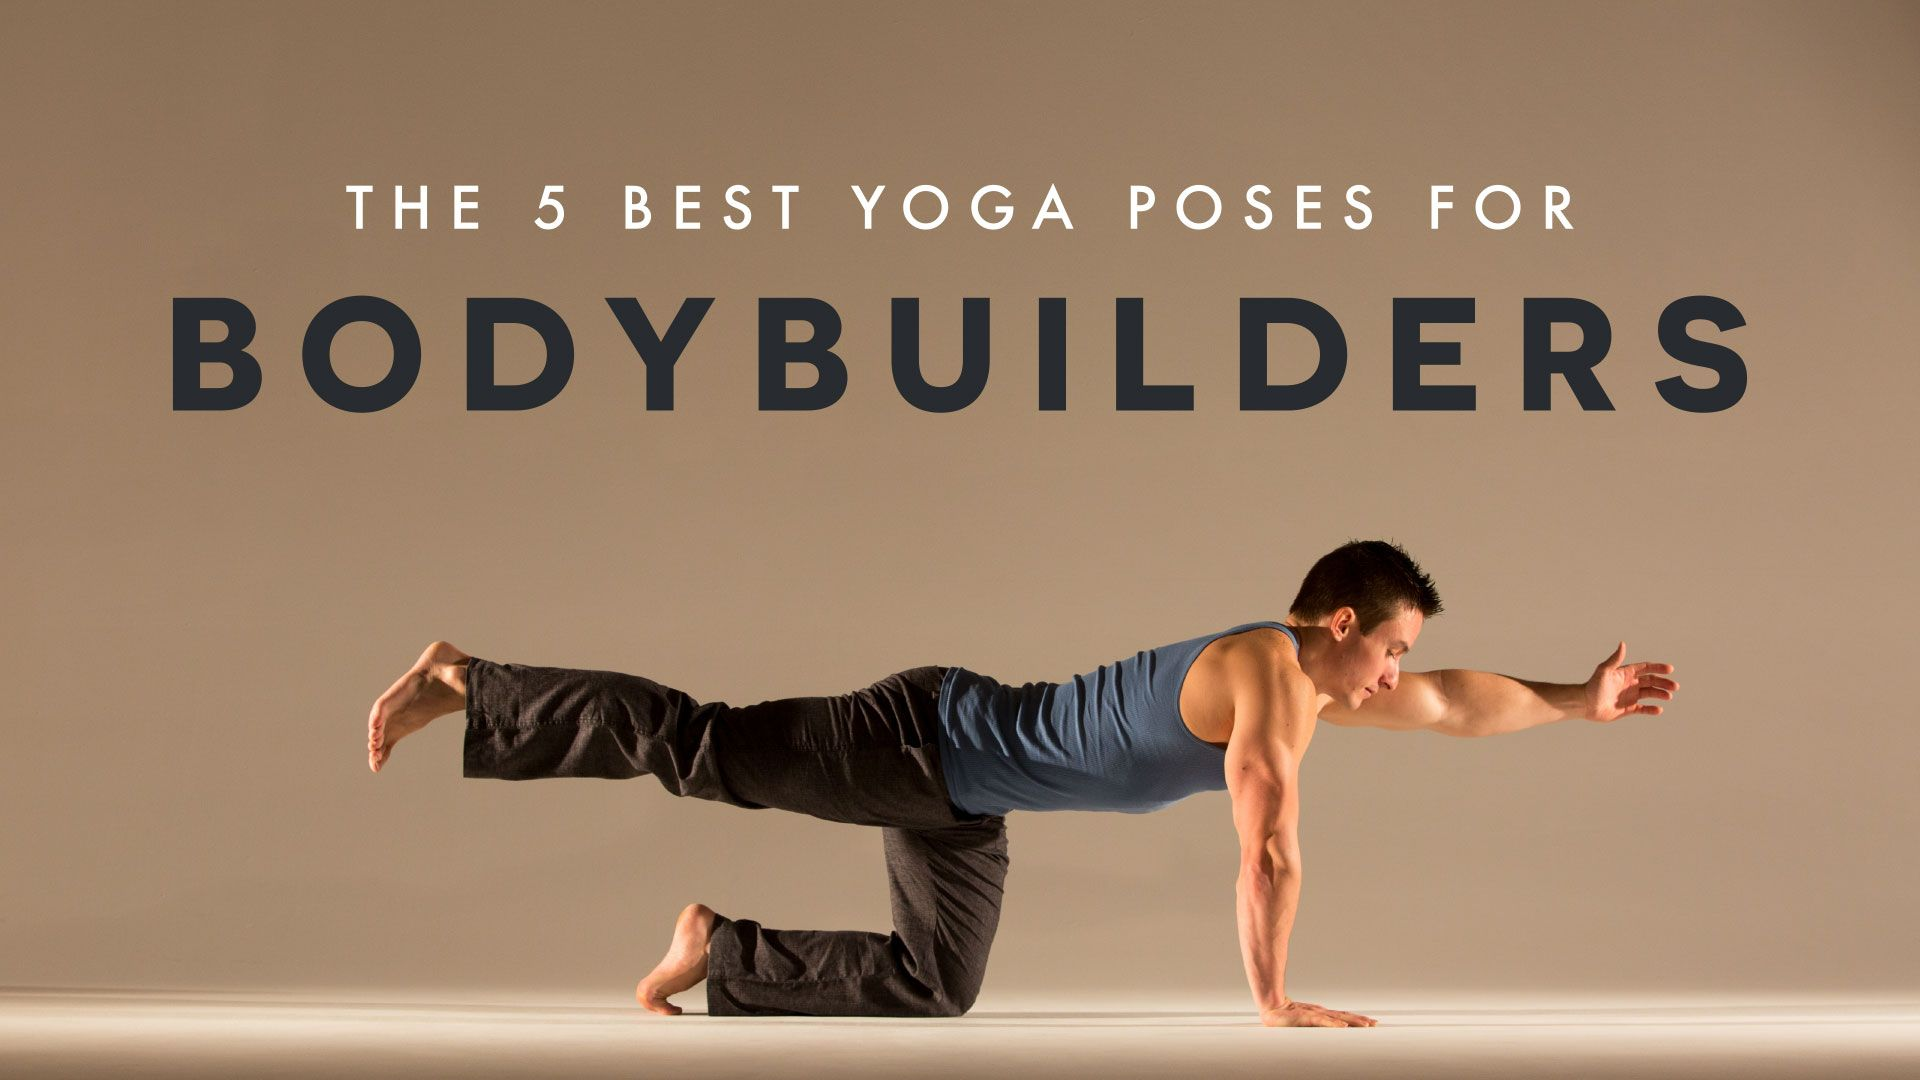 Yes, yoga can enhance your bodybuilding experience. Try these